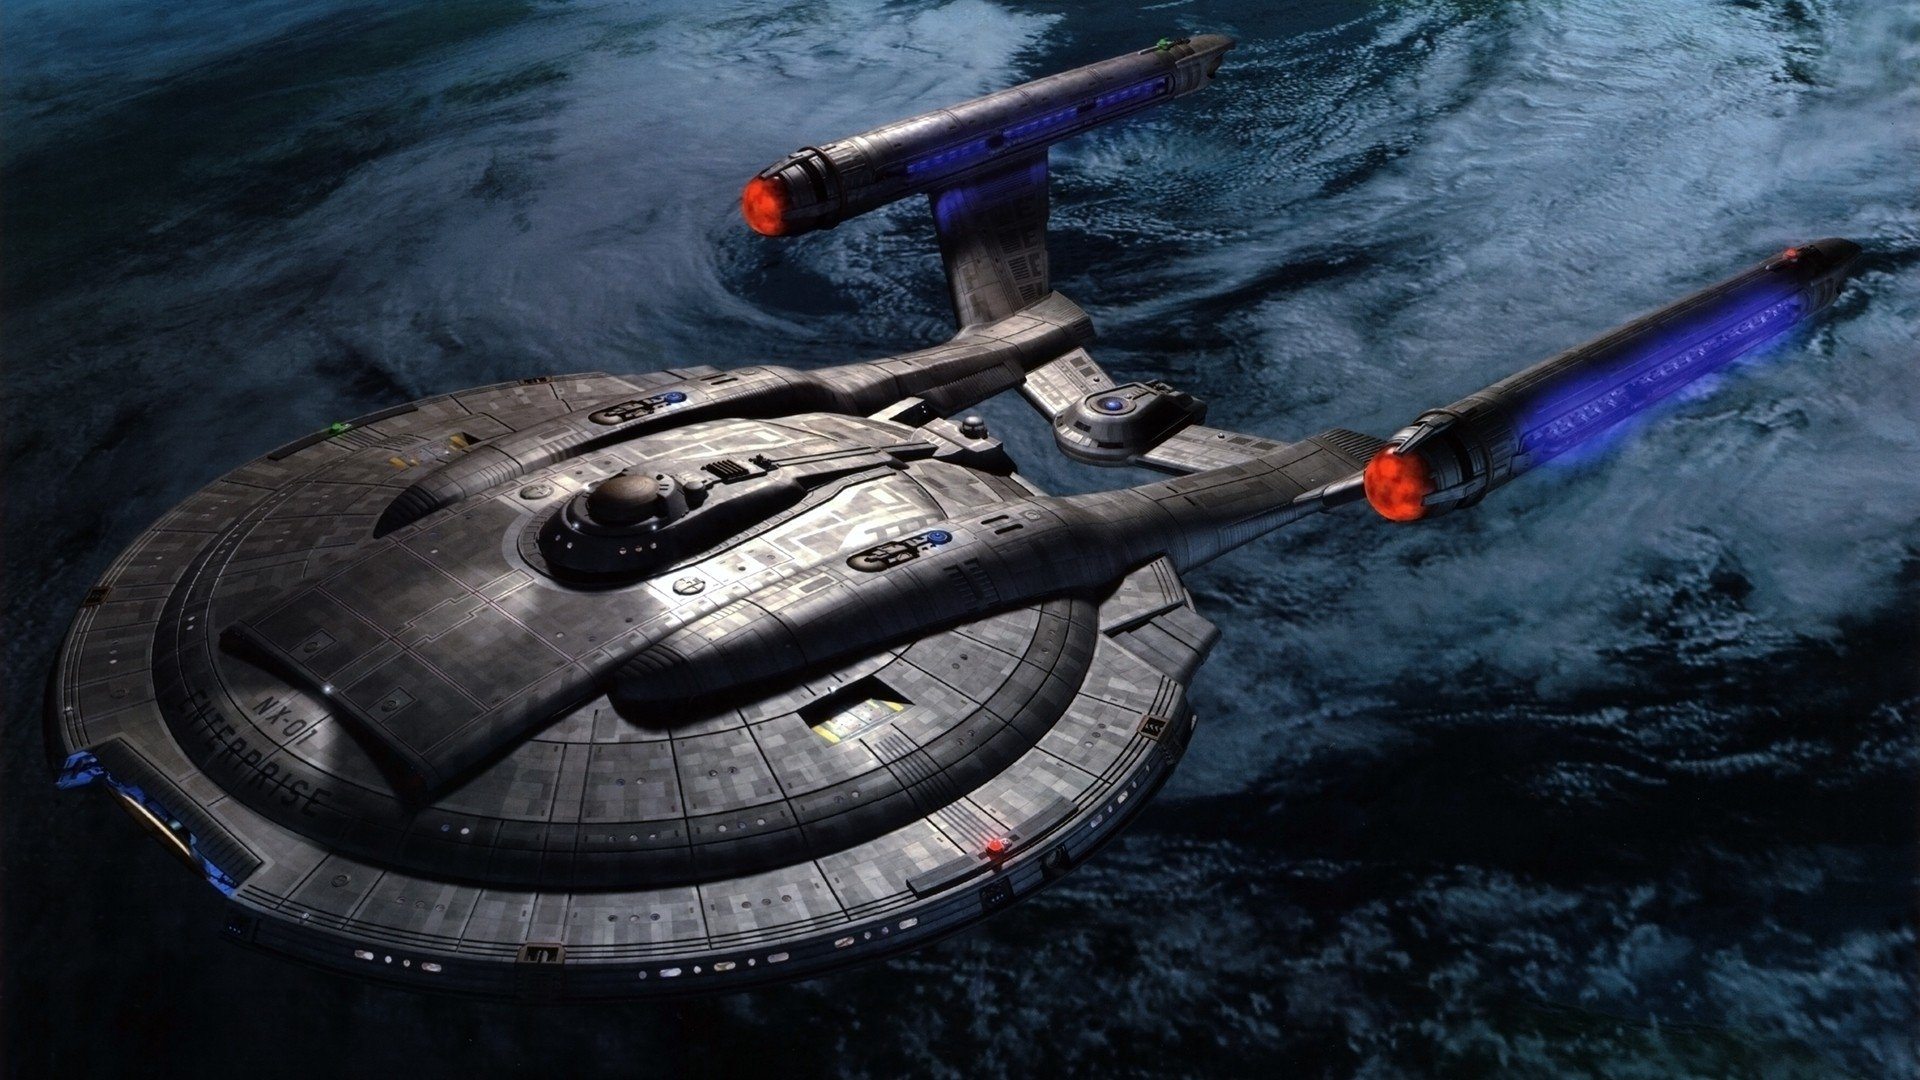 Super Star Trek: Enterprise Full HD Wallpaper and Background | 1920x1080  AX06